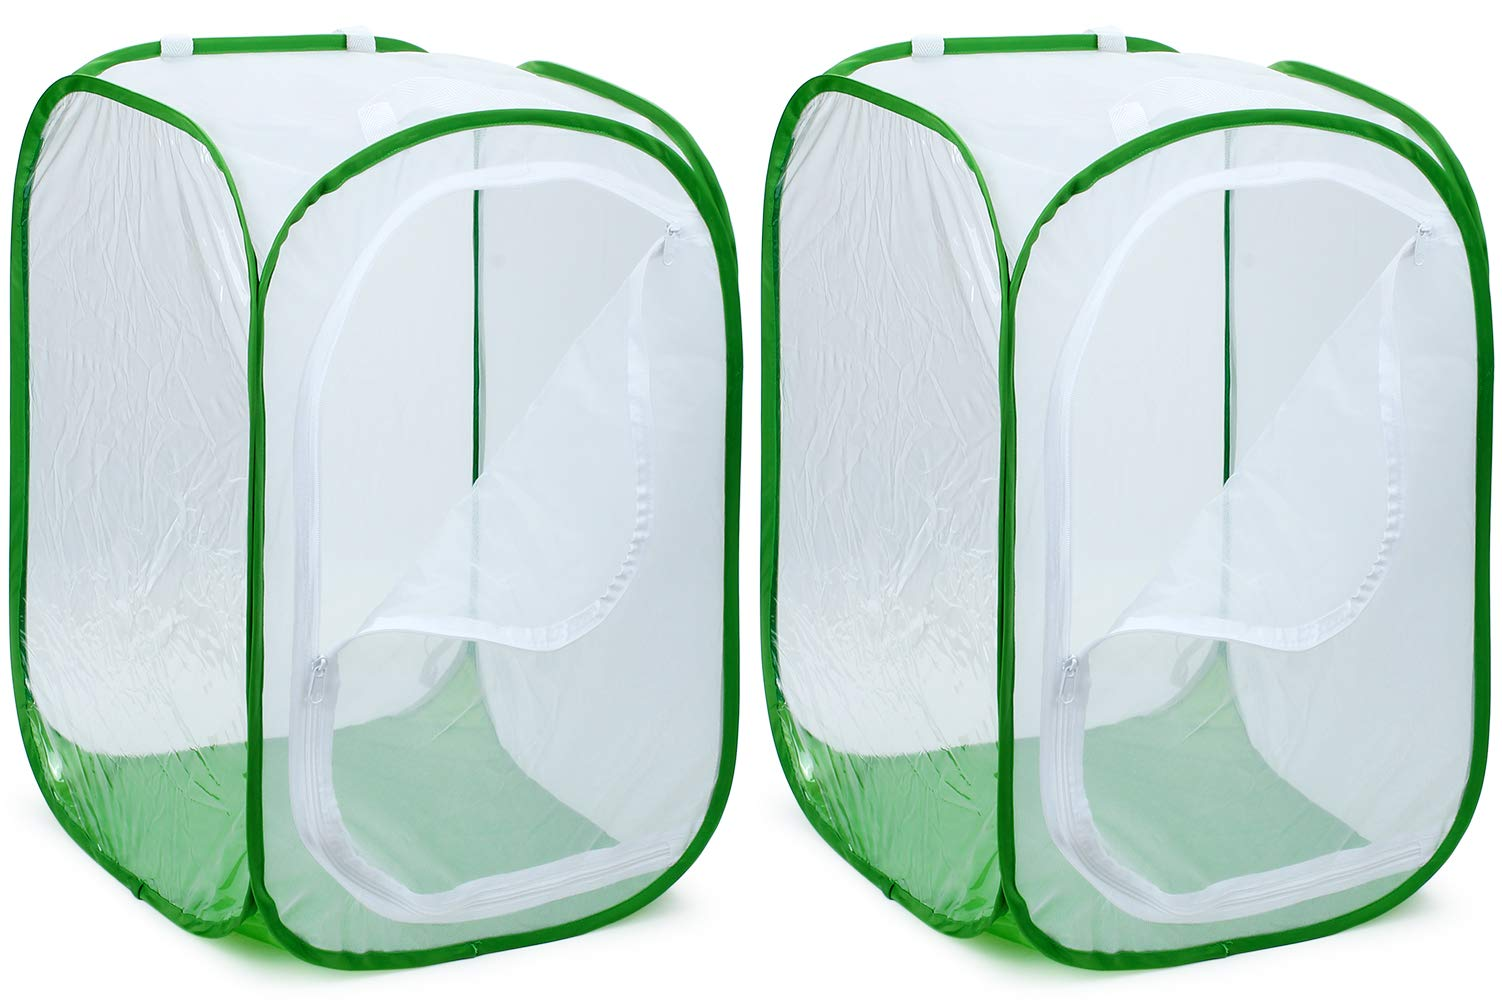 RESTCLOUD 2-Pack 36'' Large Monarch Butterfly Habitat, Giant Collapsible Insect Mesh Cage Terrarium Pop-up 24 x 24 x 36 Inches